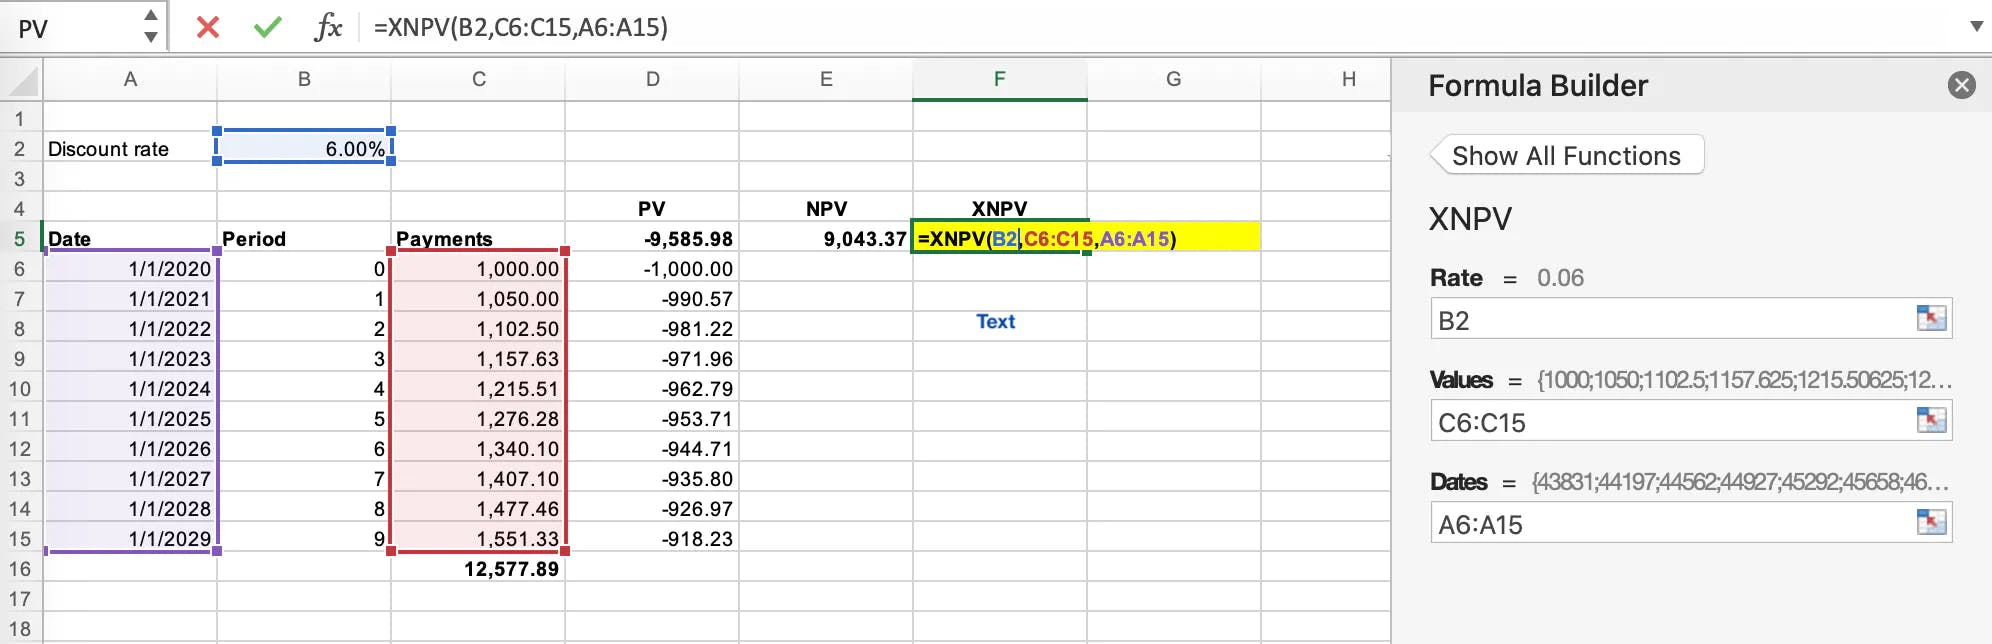 Application of the XNPV formula in Microsoft Excel